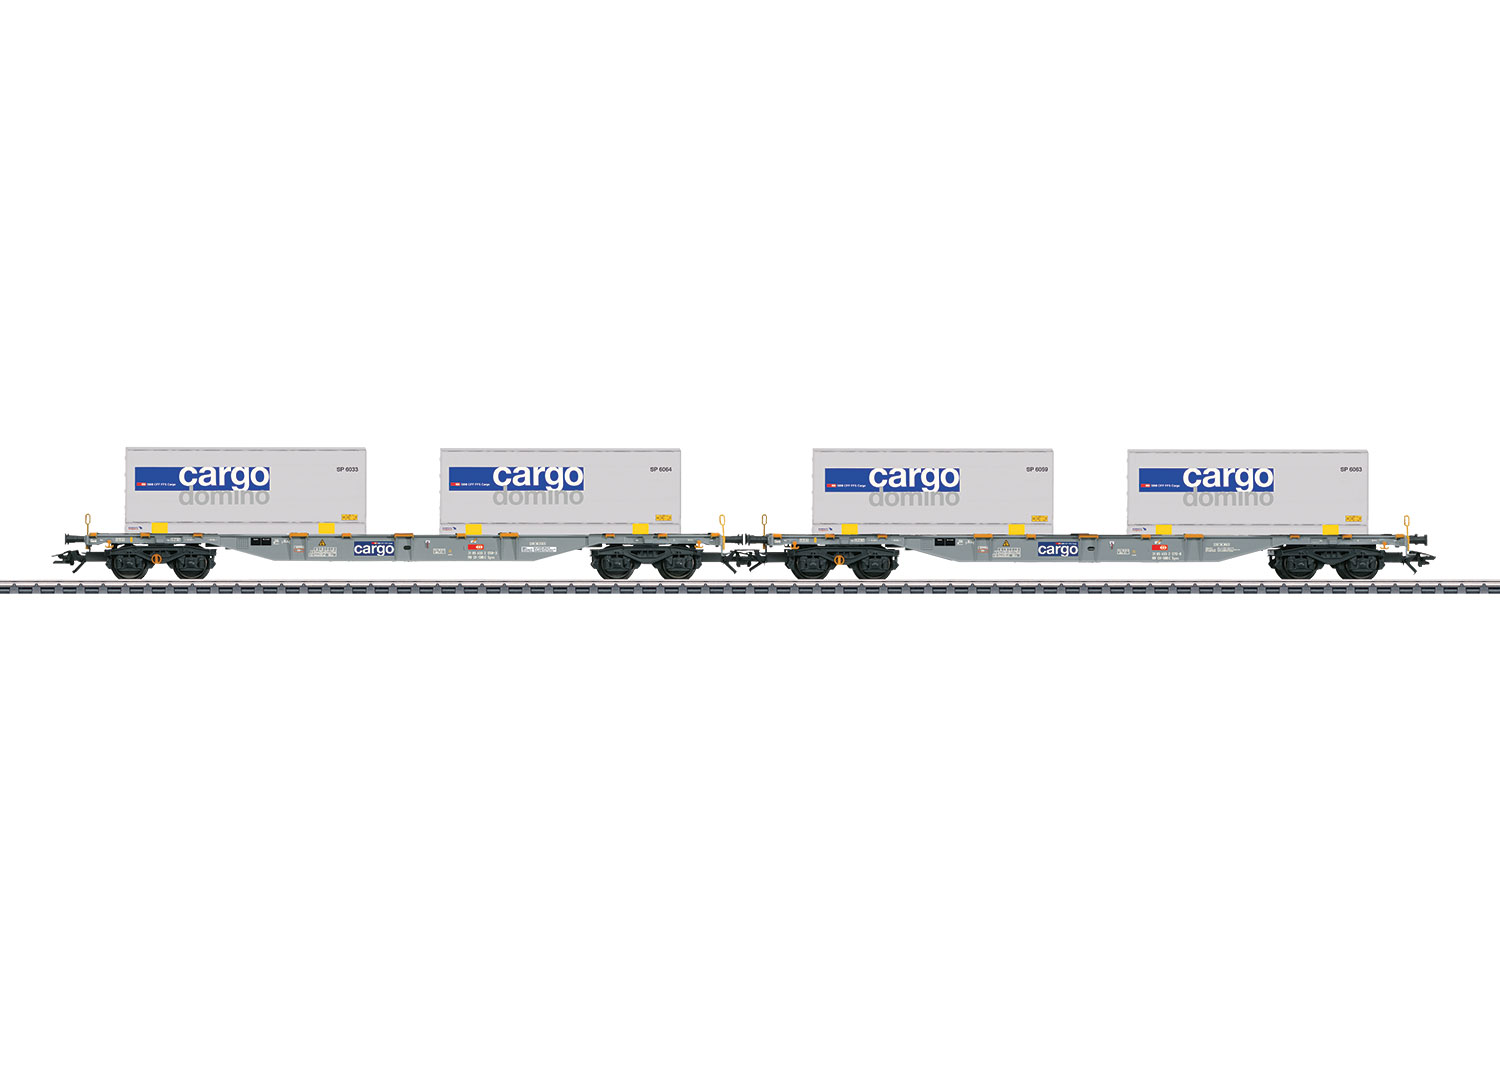 Two Type Sgnss Container Flat Cars with Interchangeable Transport Units